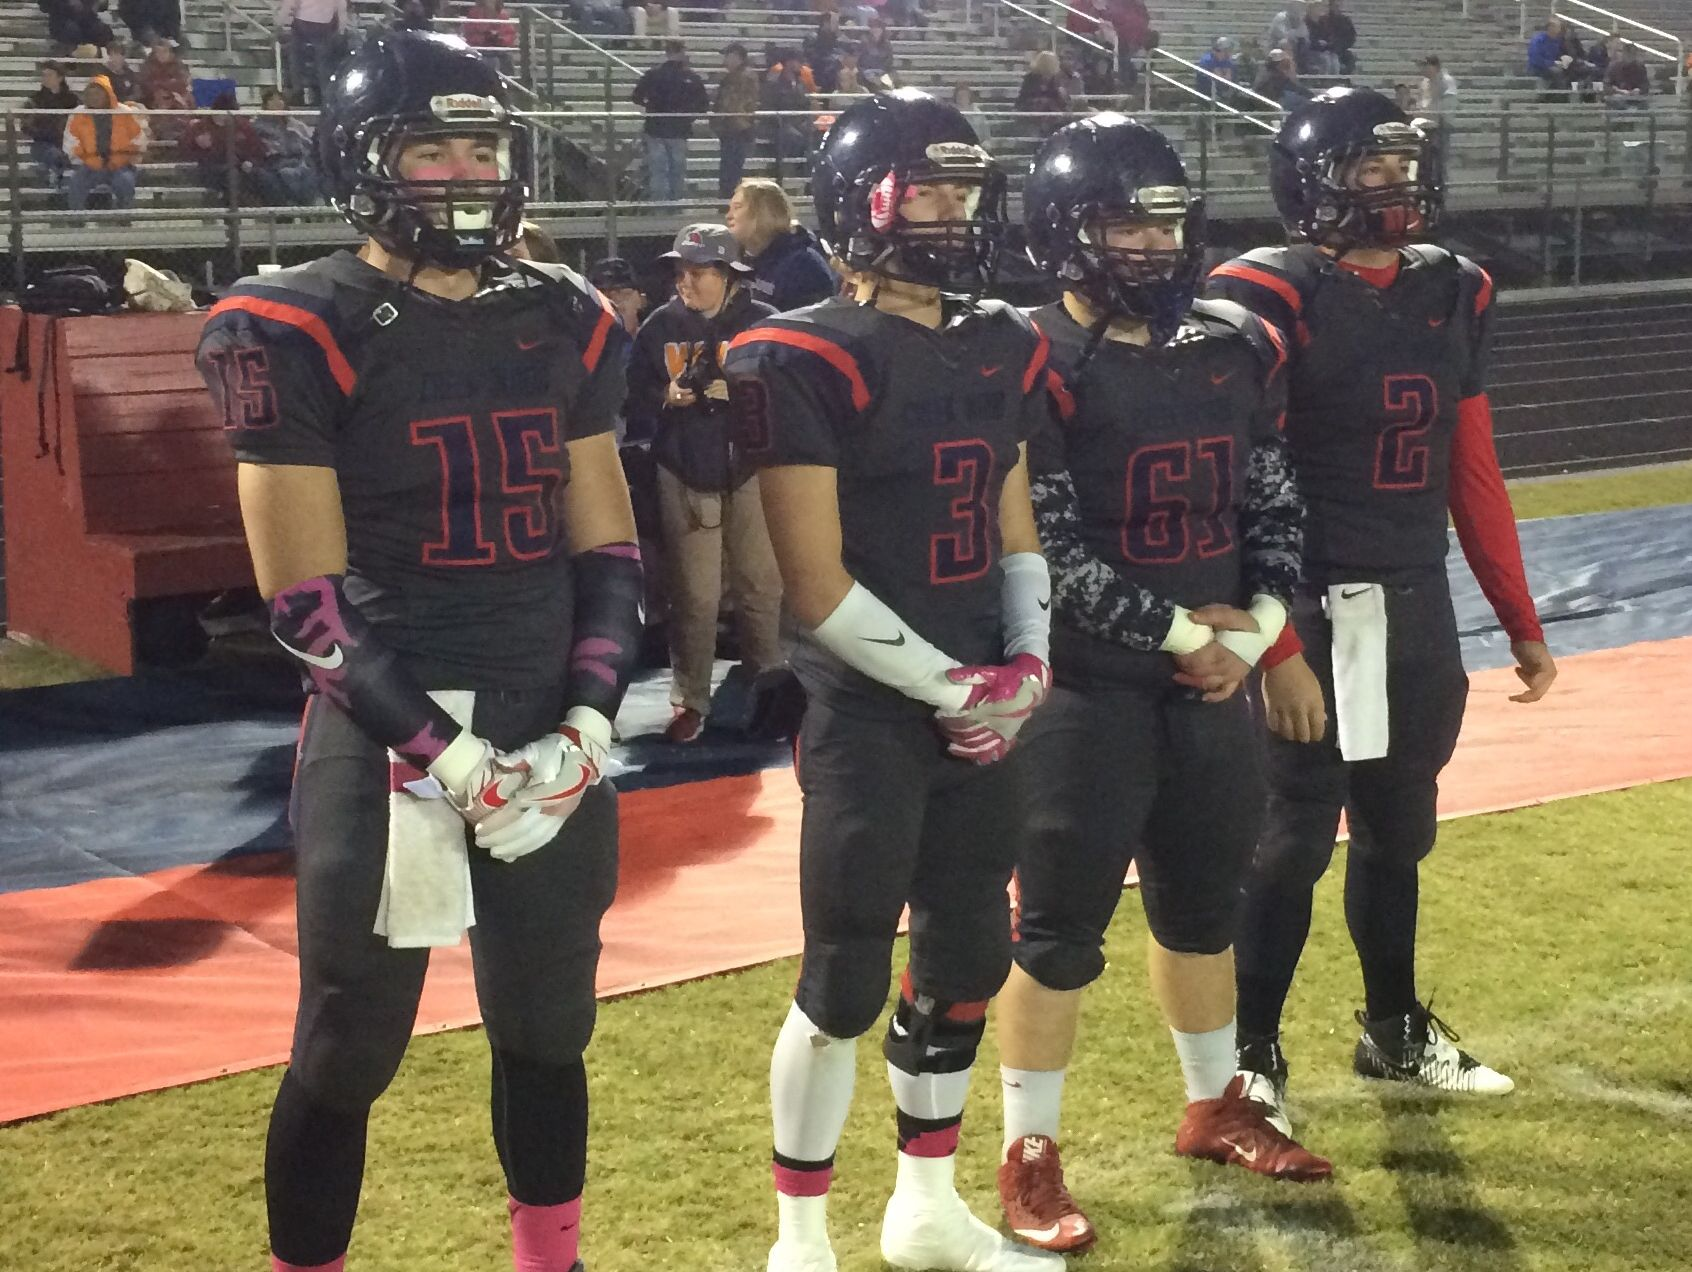 From left, Creek Wood captains Hayden Boone, Brandon Harris, Zach Mayberry, and Devon Higgins before the game against Kenwood.